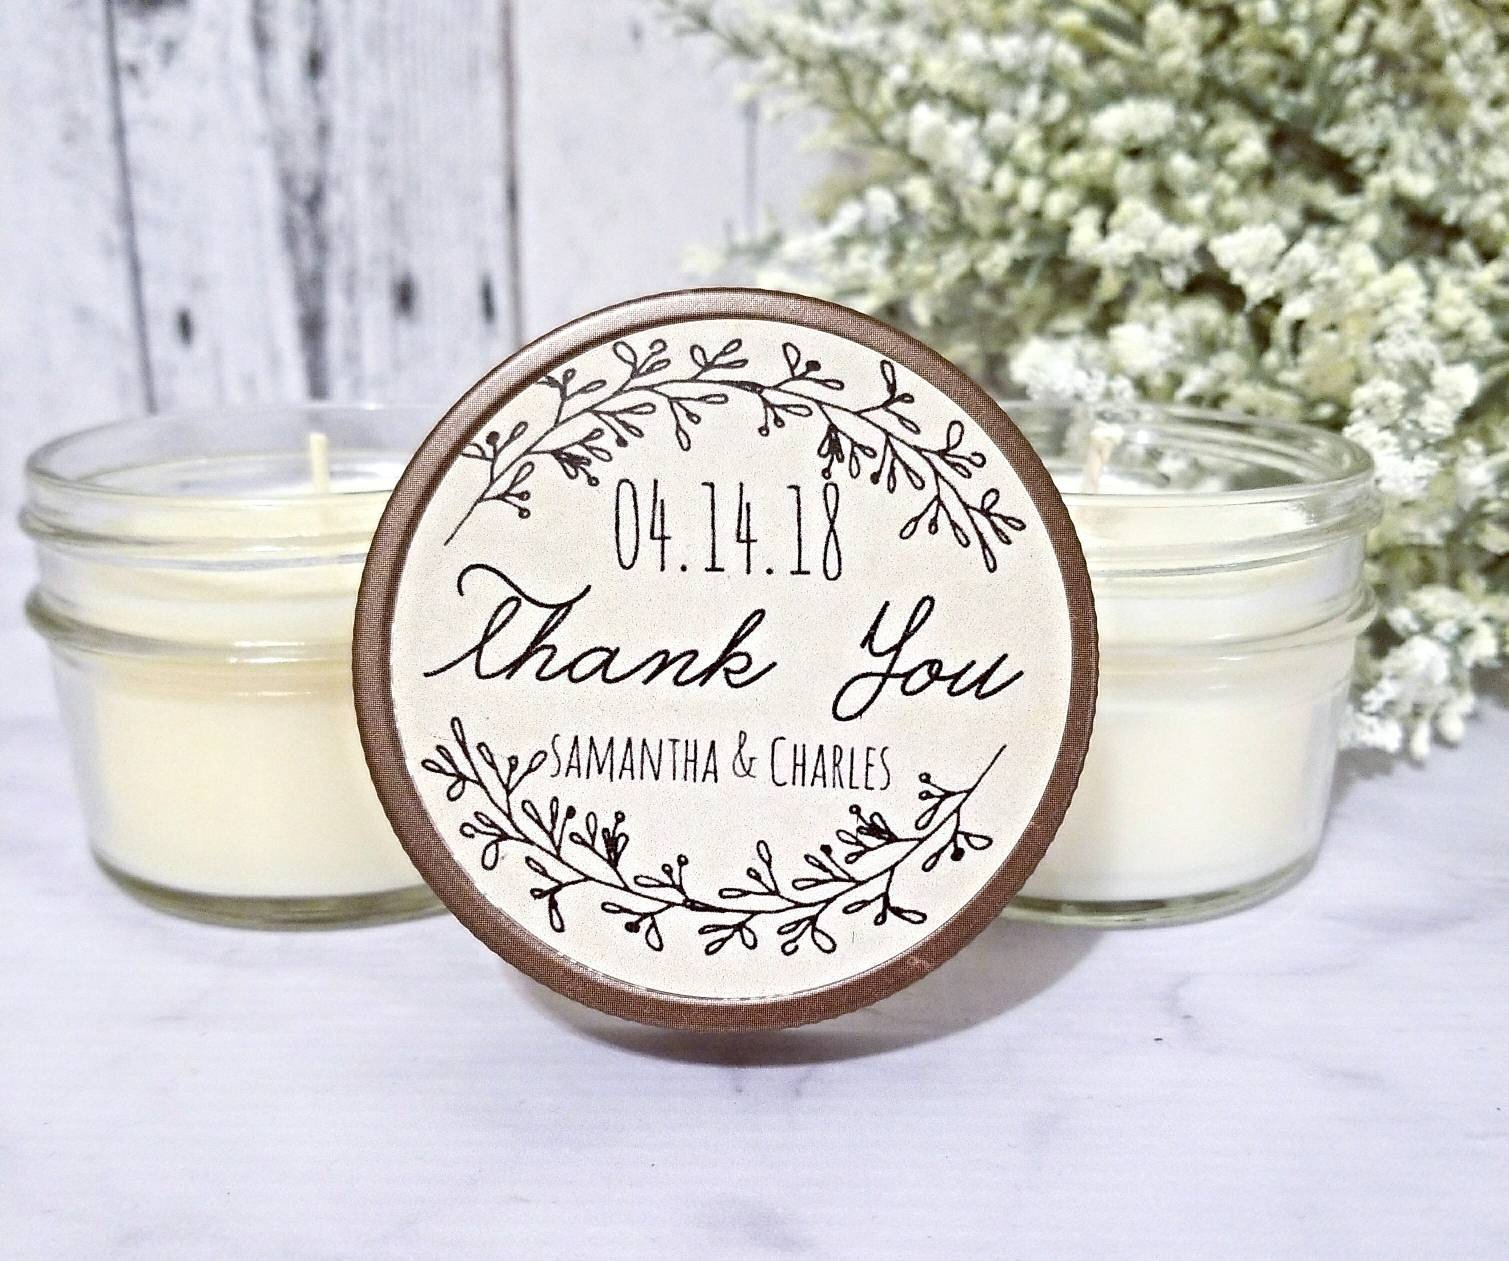 1. Customized Candles - Send your guests home with a sweet scented candle that will bring back memories of that special day whenever they light it!